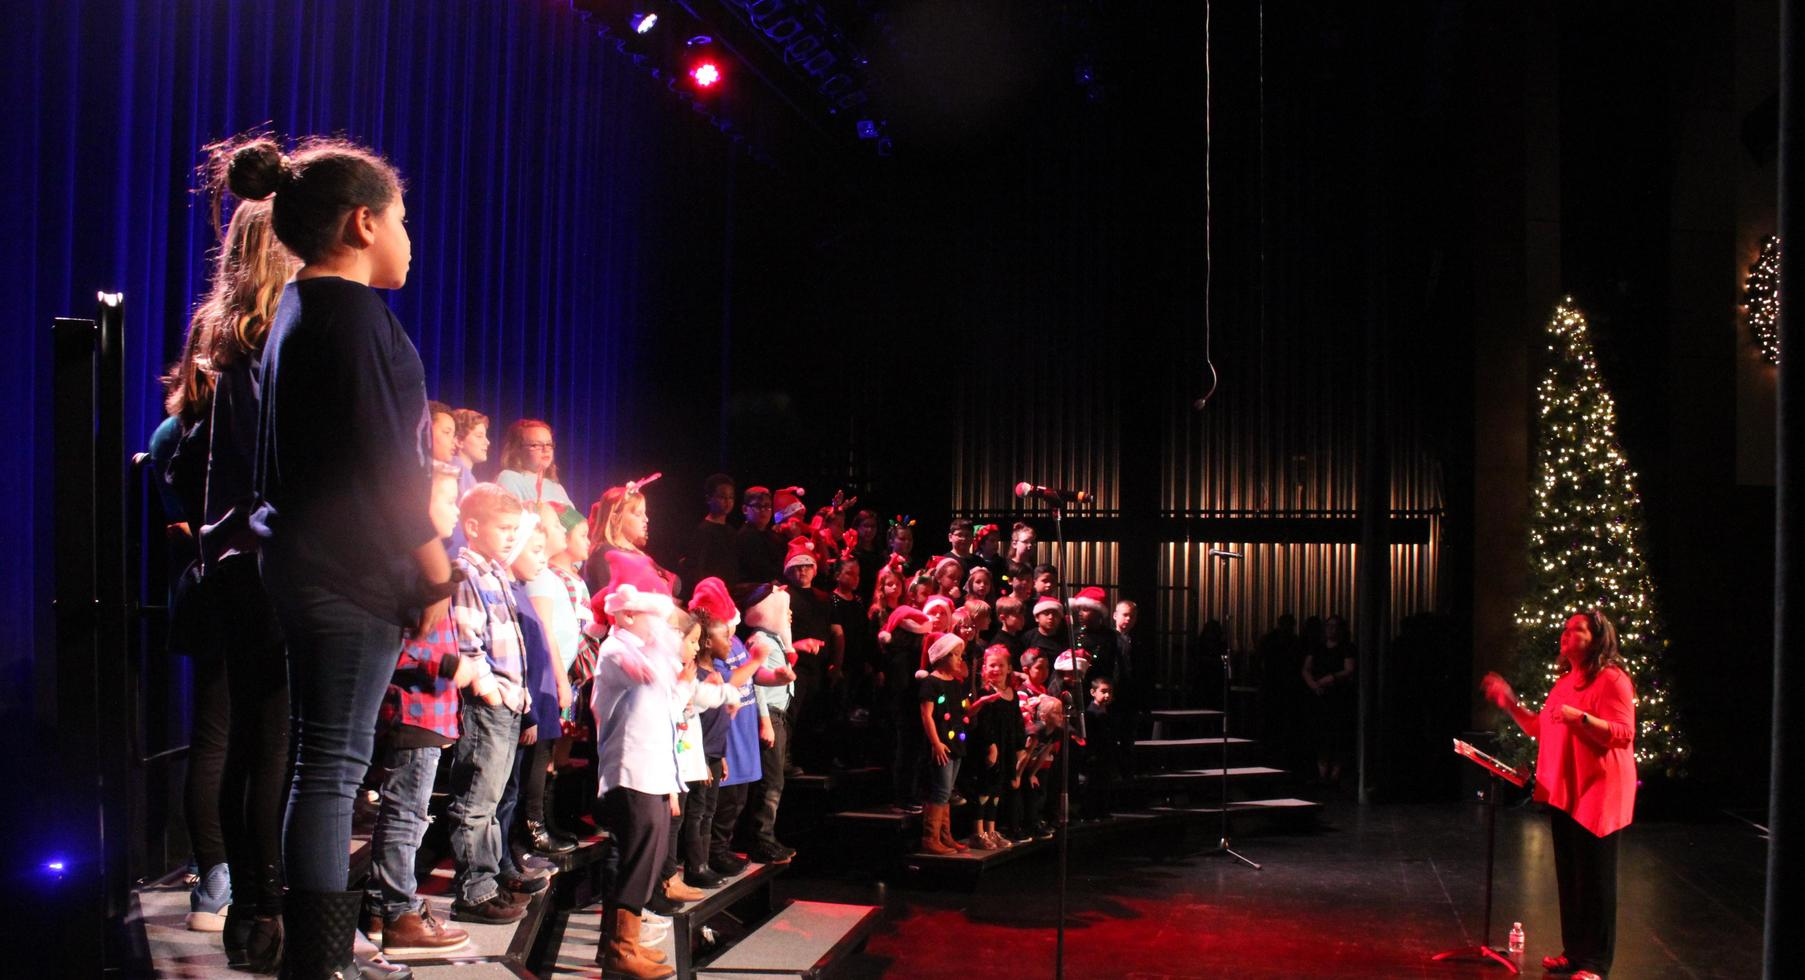 Blue House singing their song.